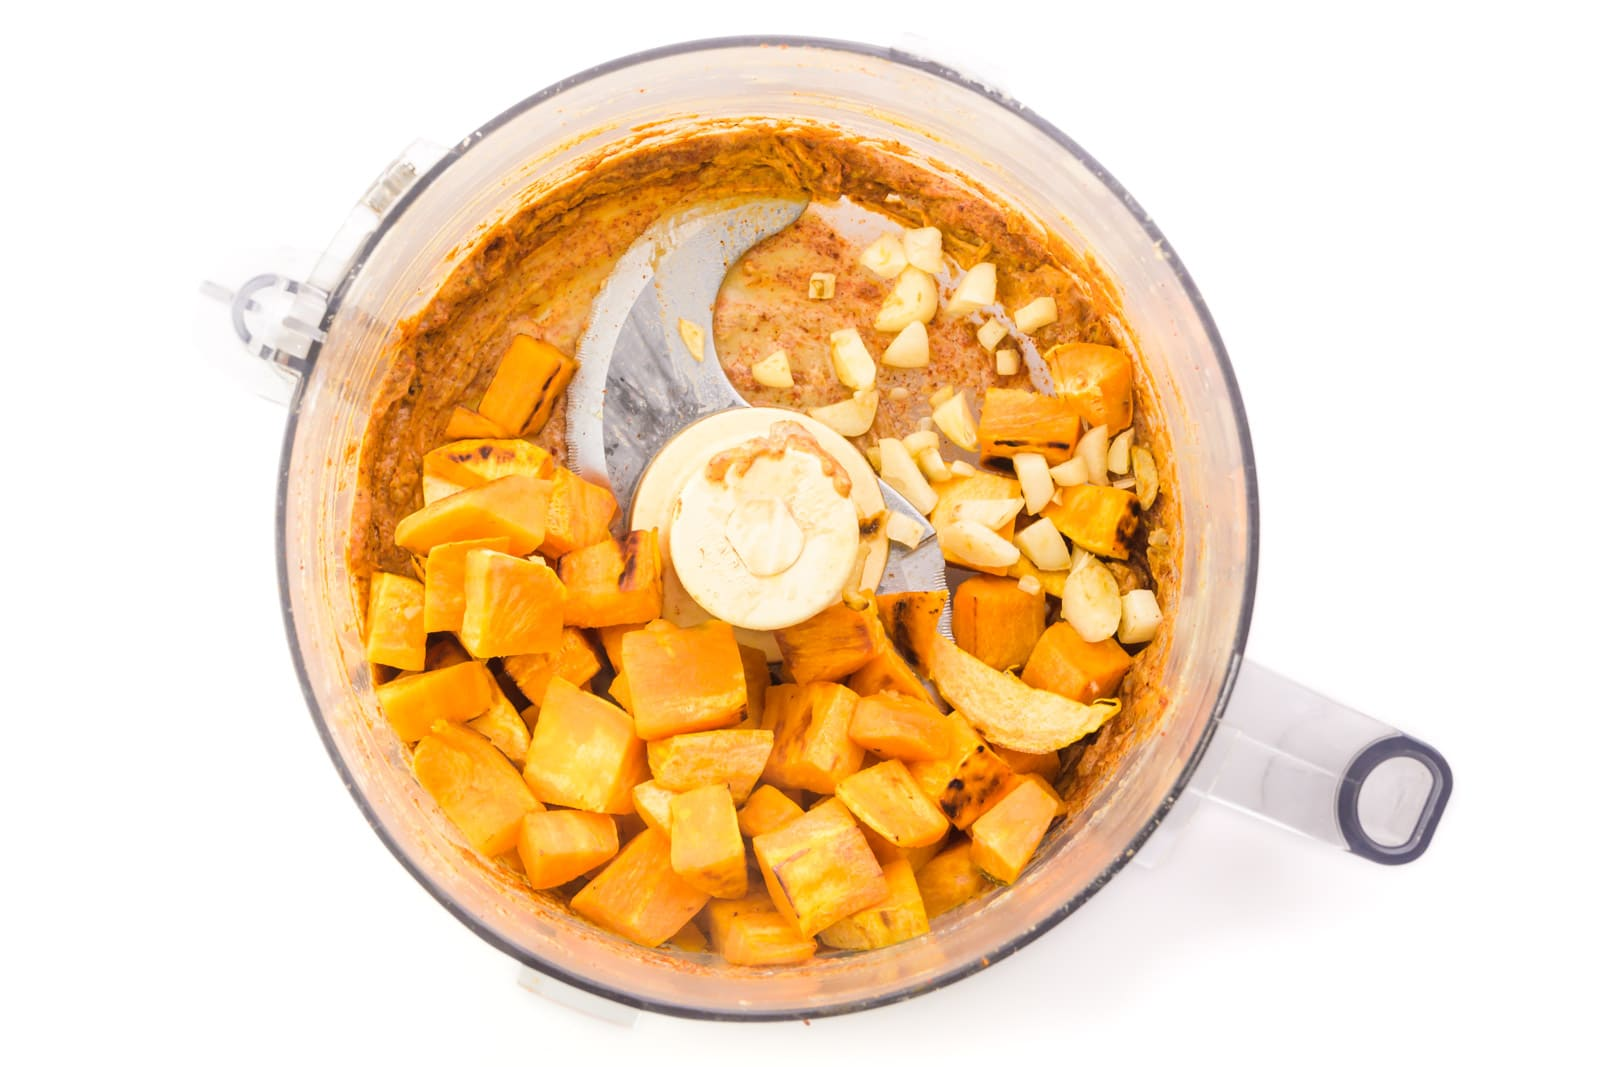 Ingredients are in a food processor, such as sweet potatoes, garlic, and other ground up ingredients.